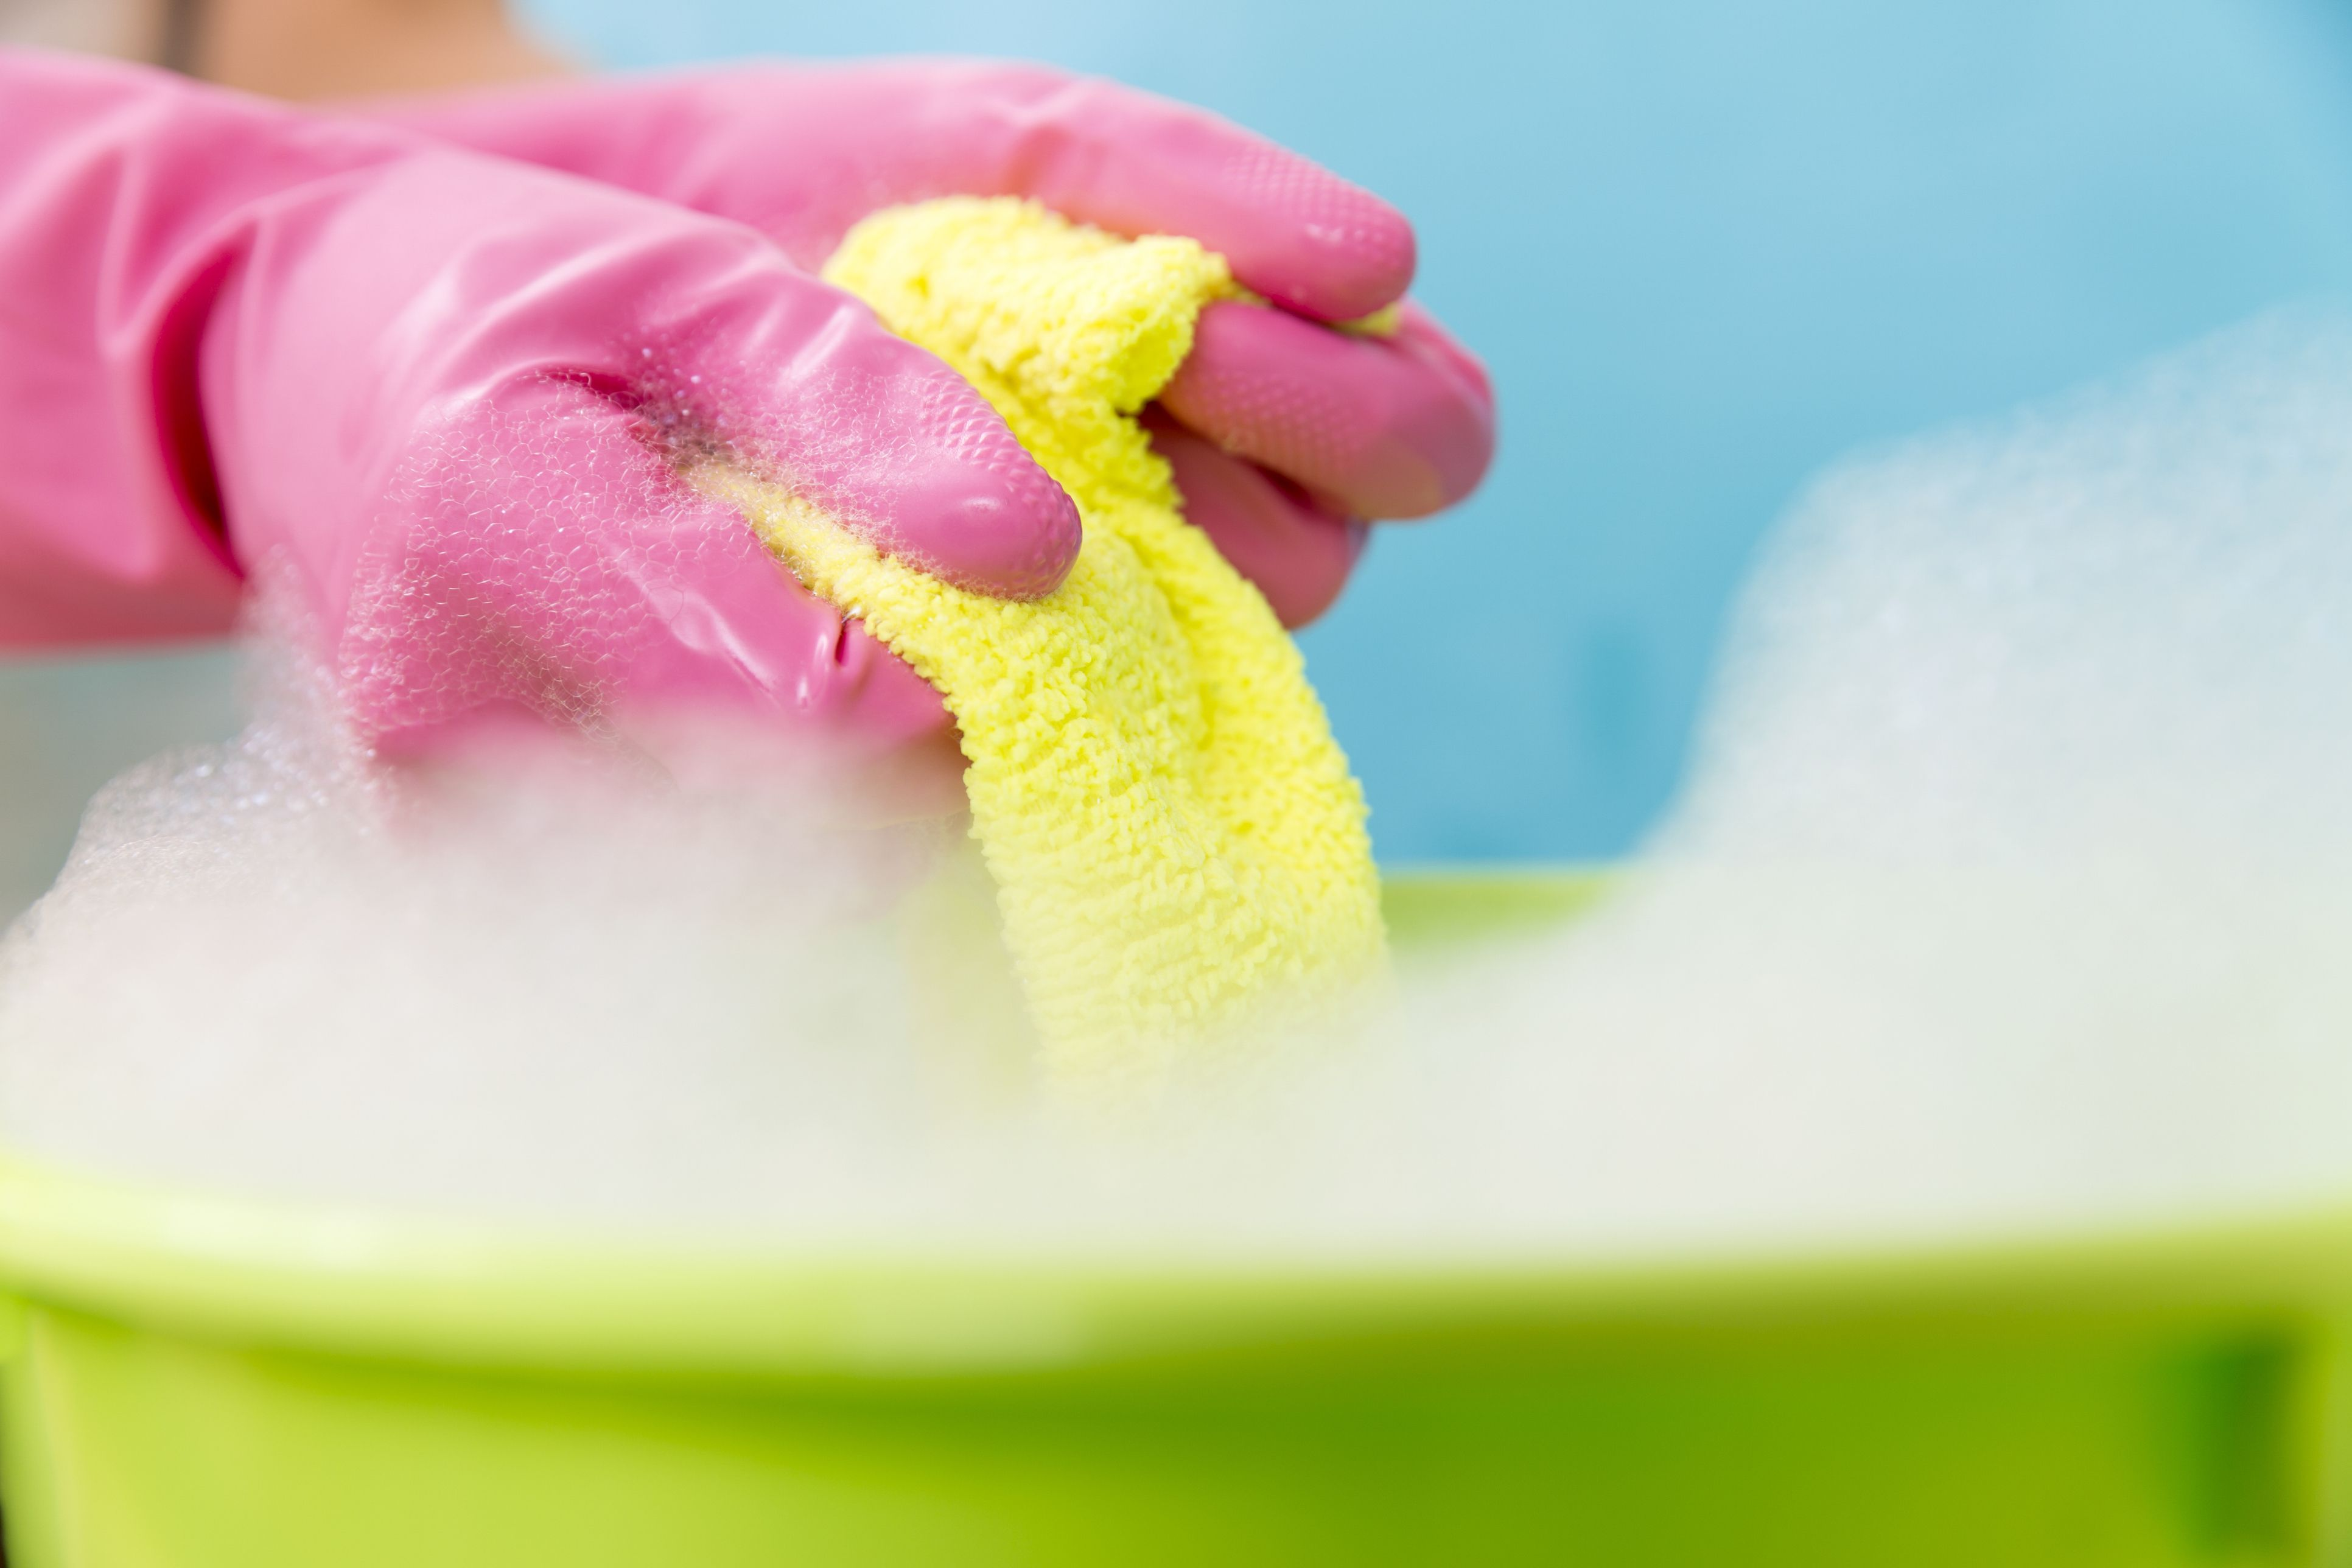 Stain Removal Quiz - How to Remove Common Stains